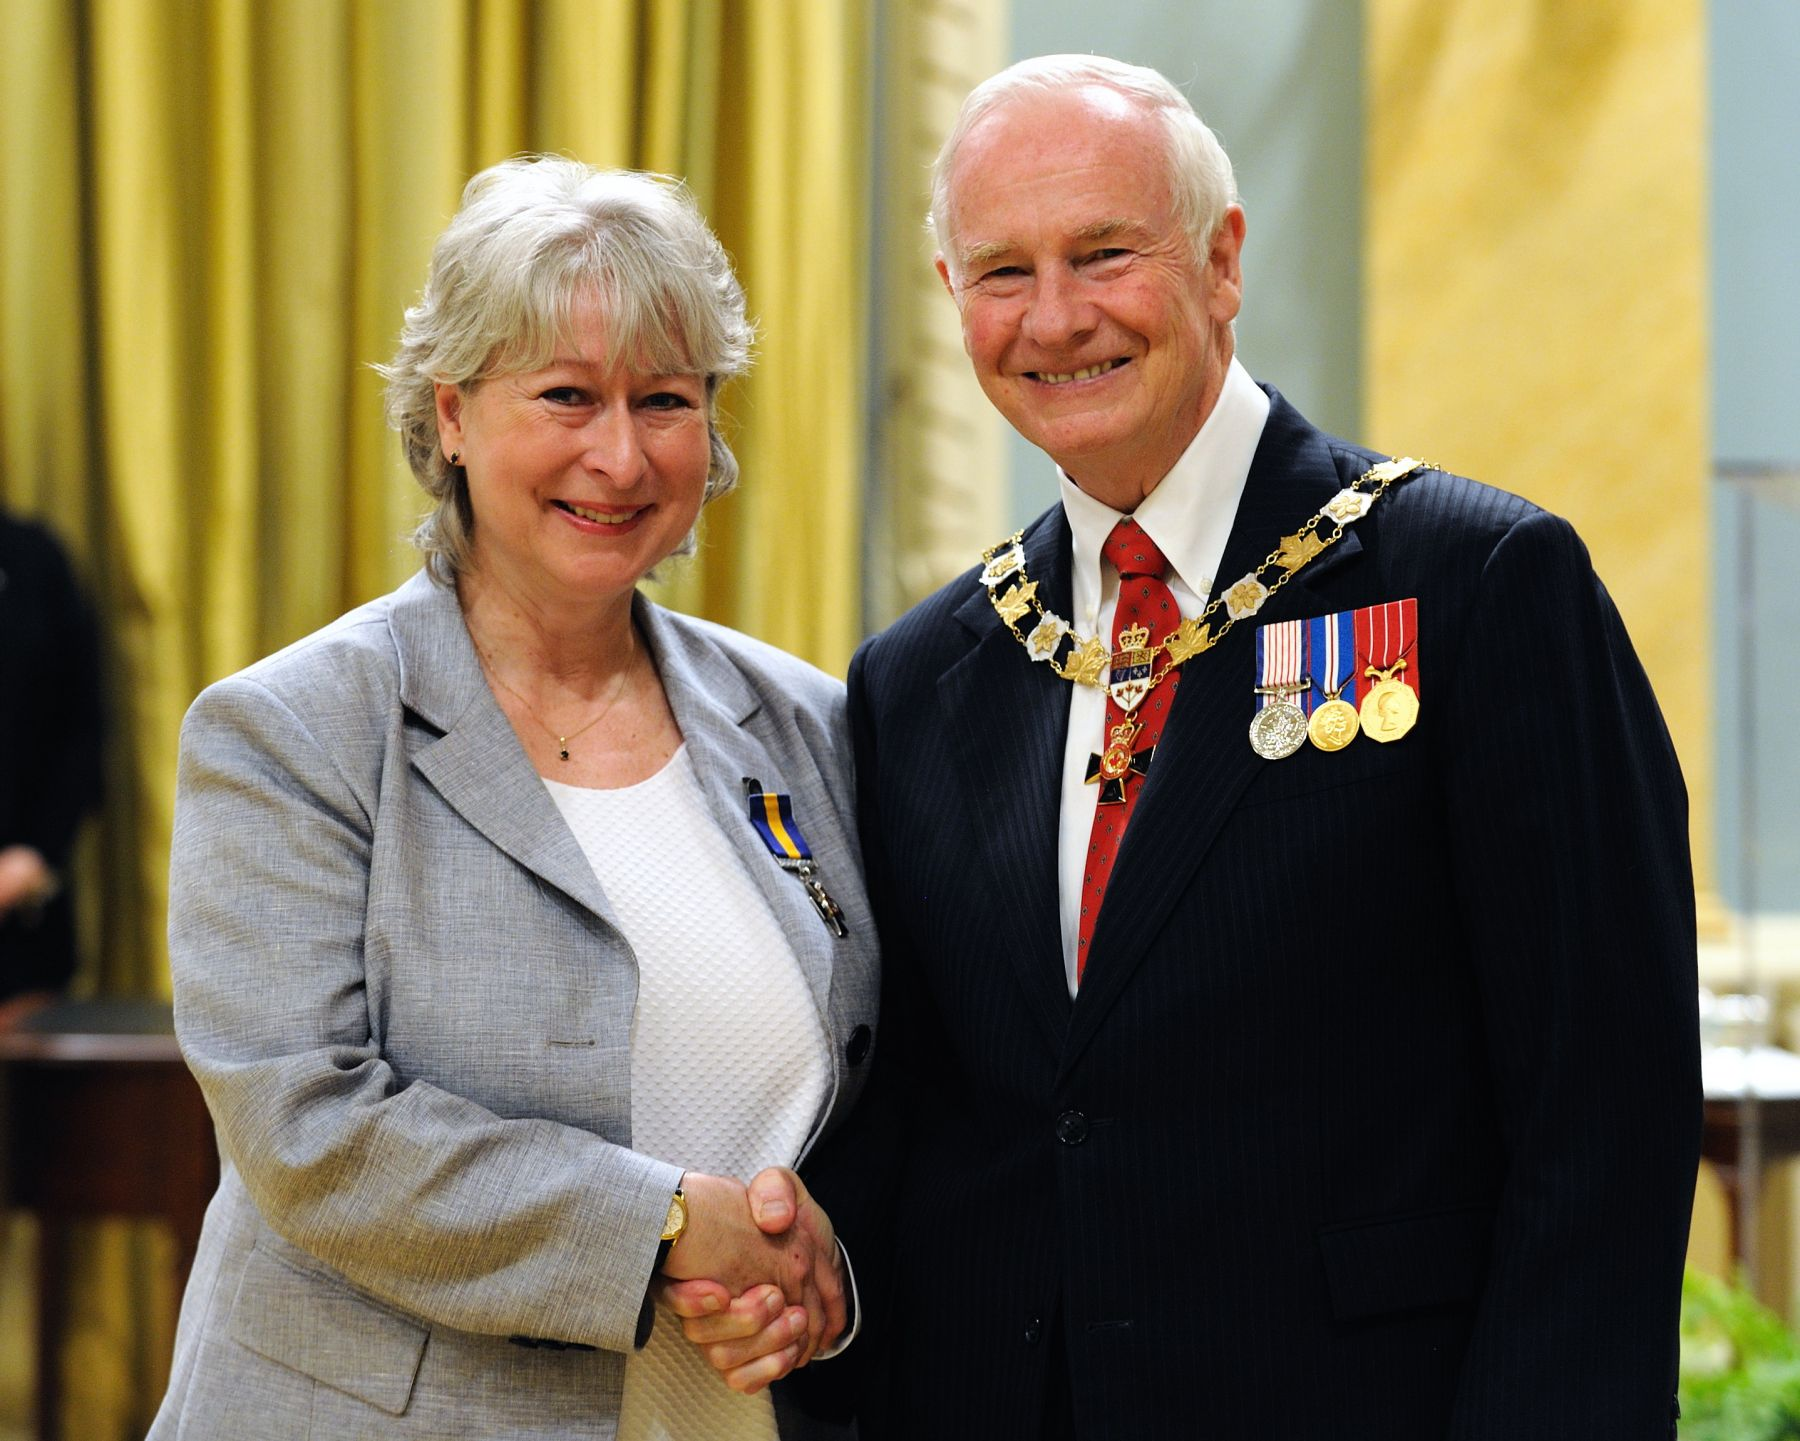 His Excellency presented the Order of Merit of the Police Forces at the Member level (M.O.M.) to Ms. Kristine Kijewski, M.O.M., of the Toronto Police Service, Ontario.